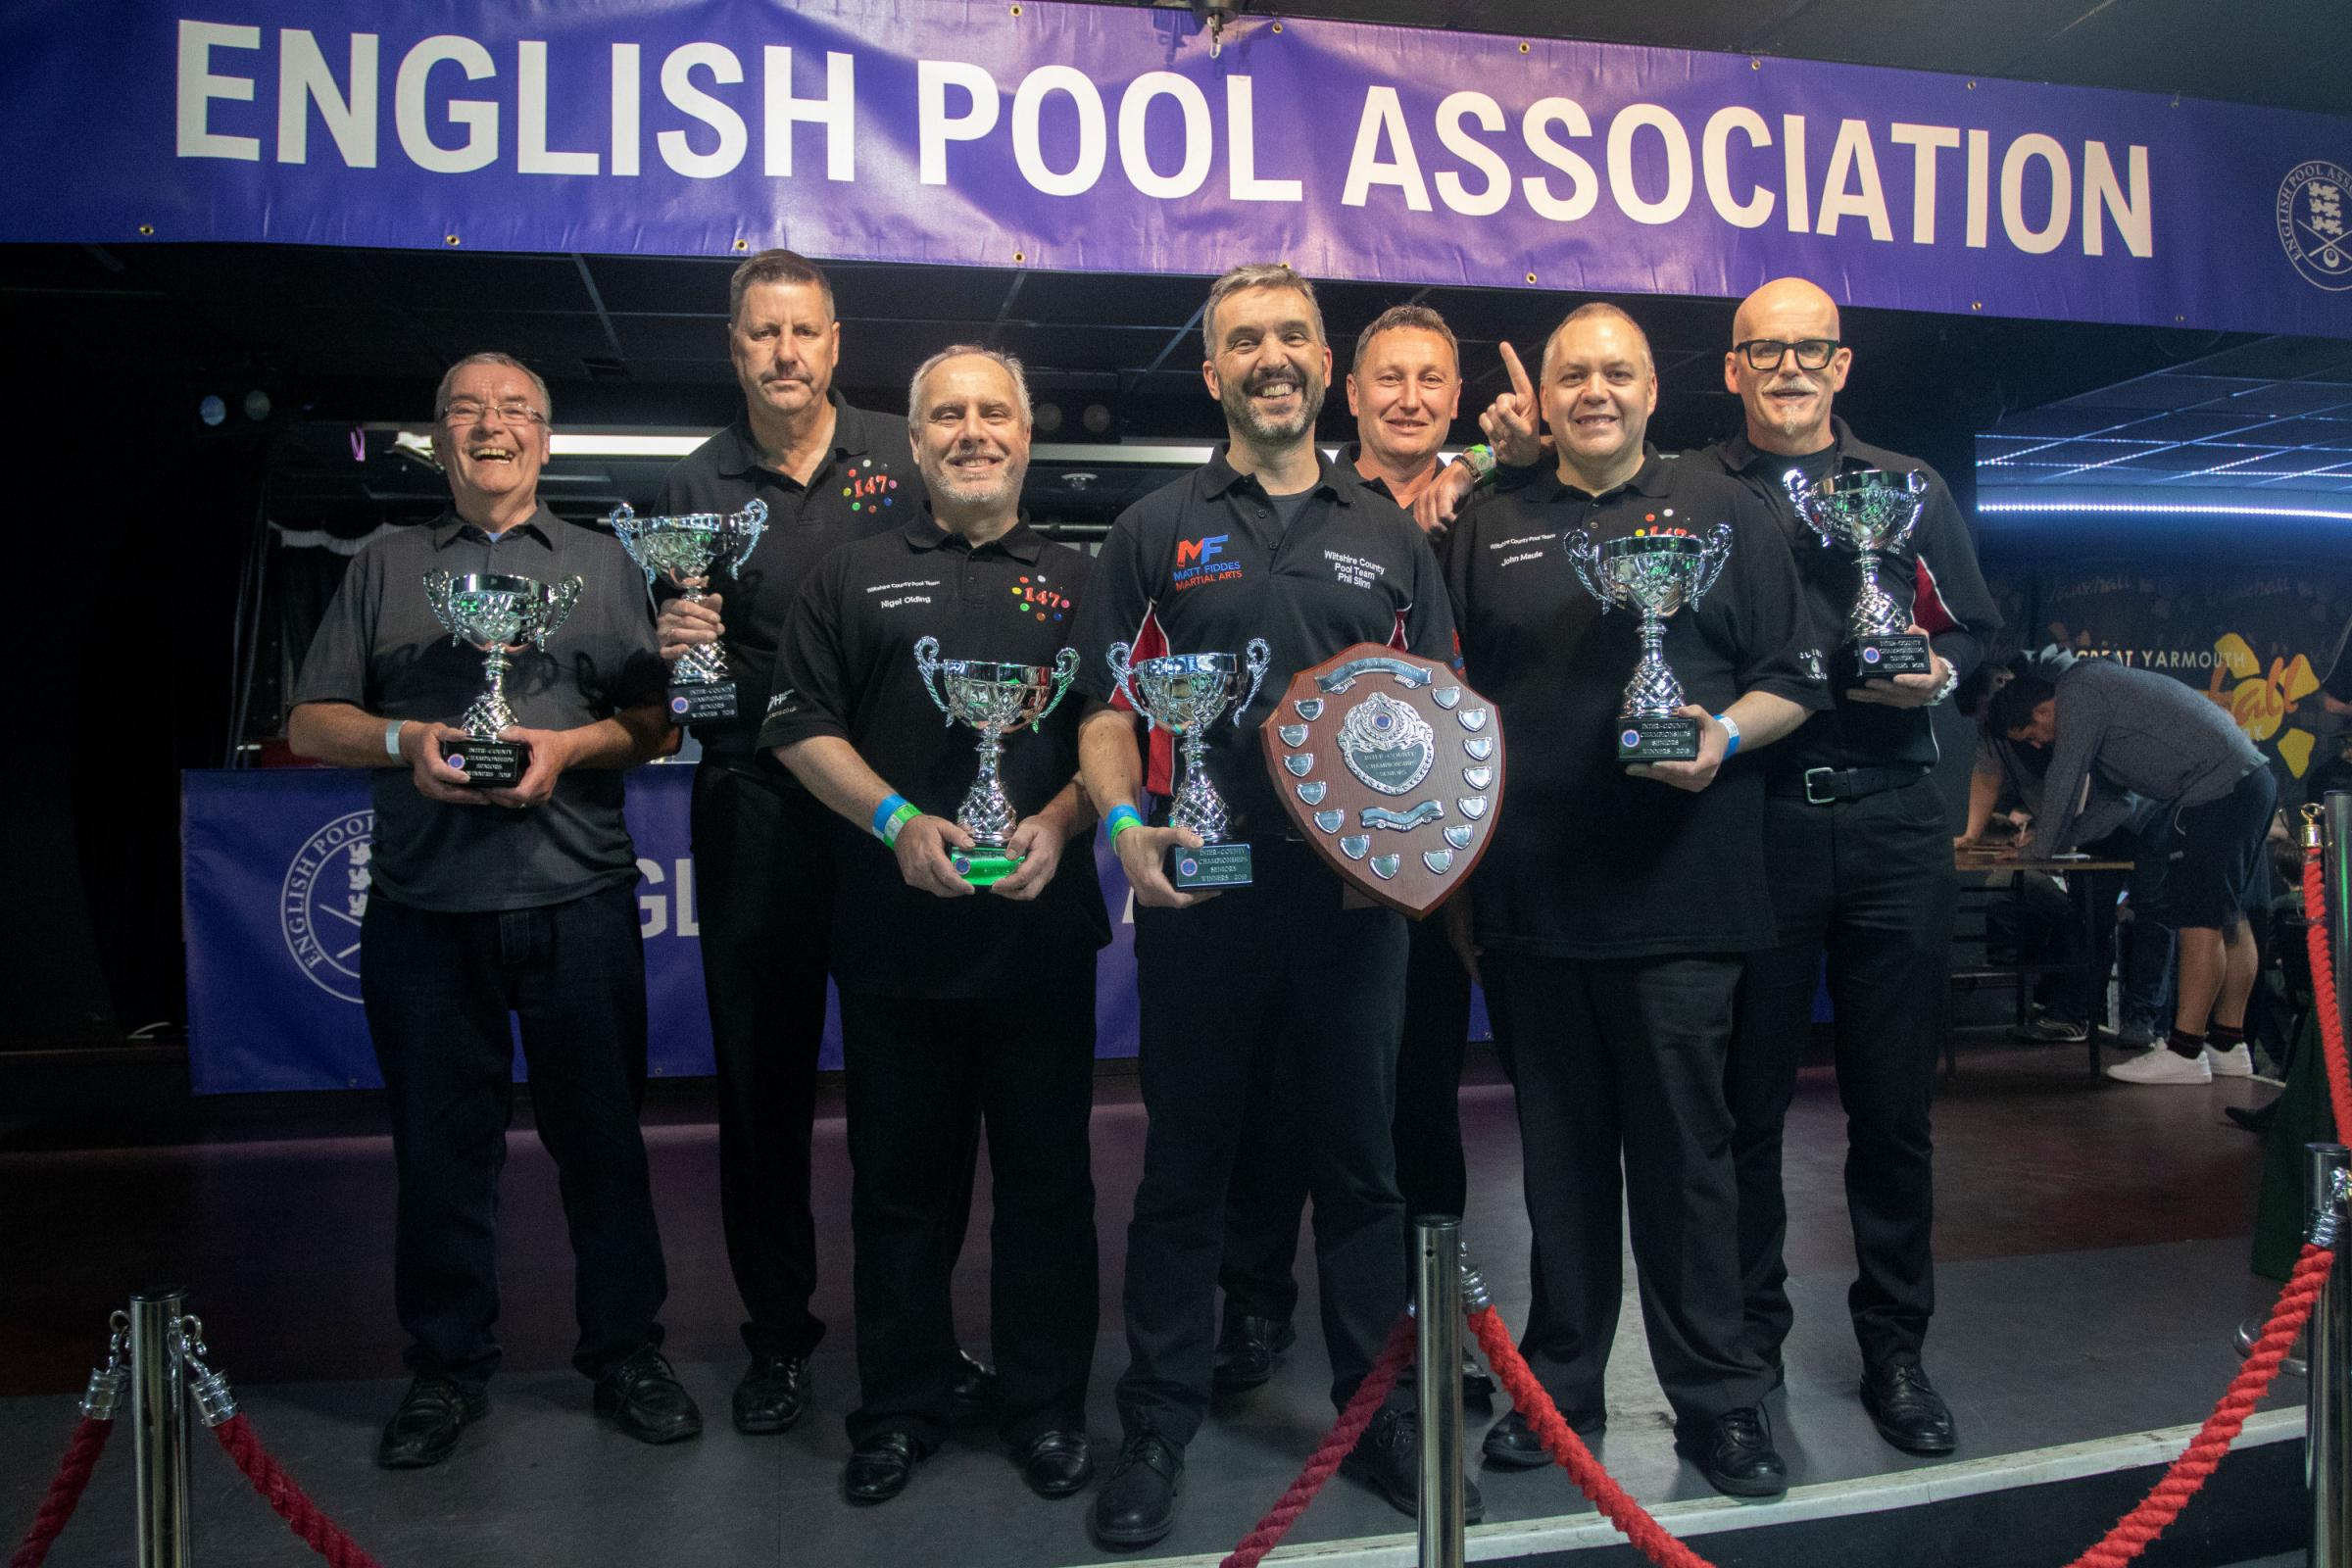 Wiltshire seniors county pool team and supporters (from left to right): Phil's Dad Alan, Jason Godbeer, Nigel Olding, Phil Slinn, Tony Nelson, John Maule and John McMackin